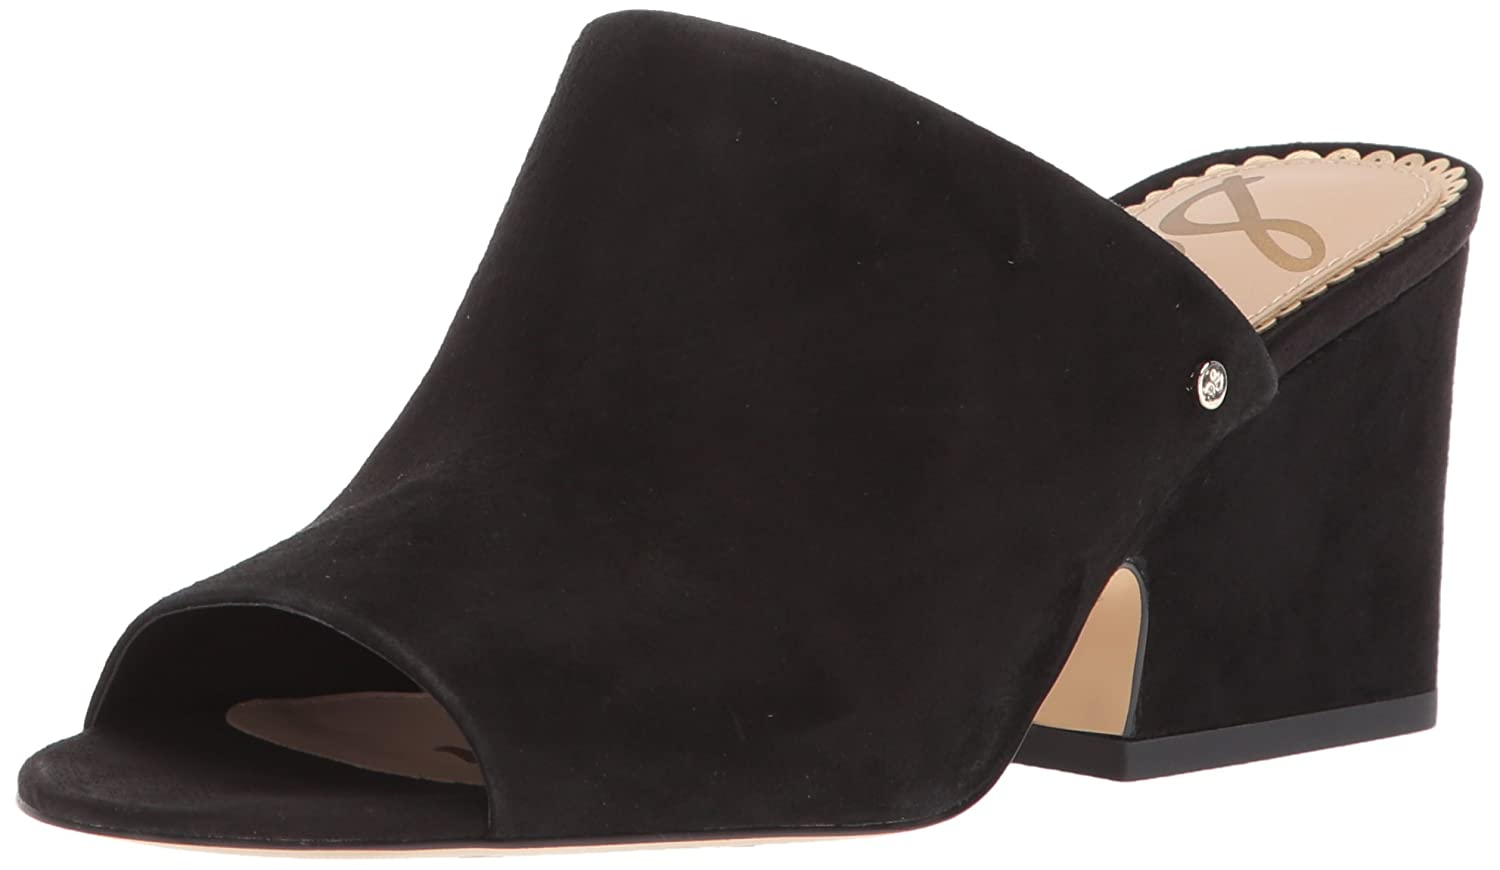 Sam Edelman Women's Rheta Wedge Sandal B072KSHWSD 9 B(M) US|Black Suede